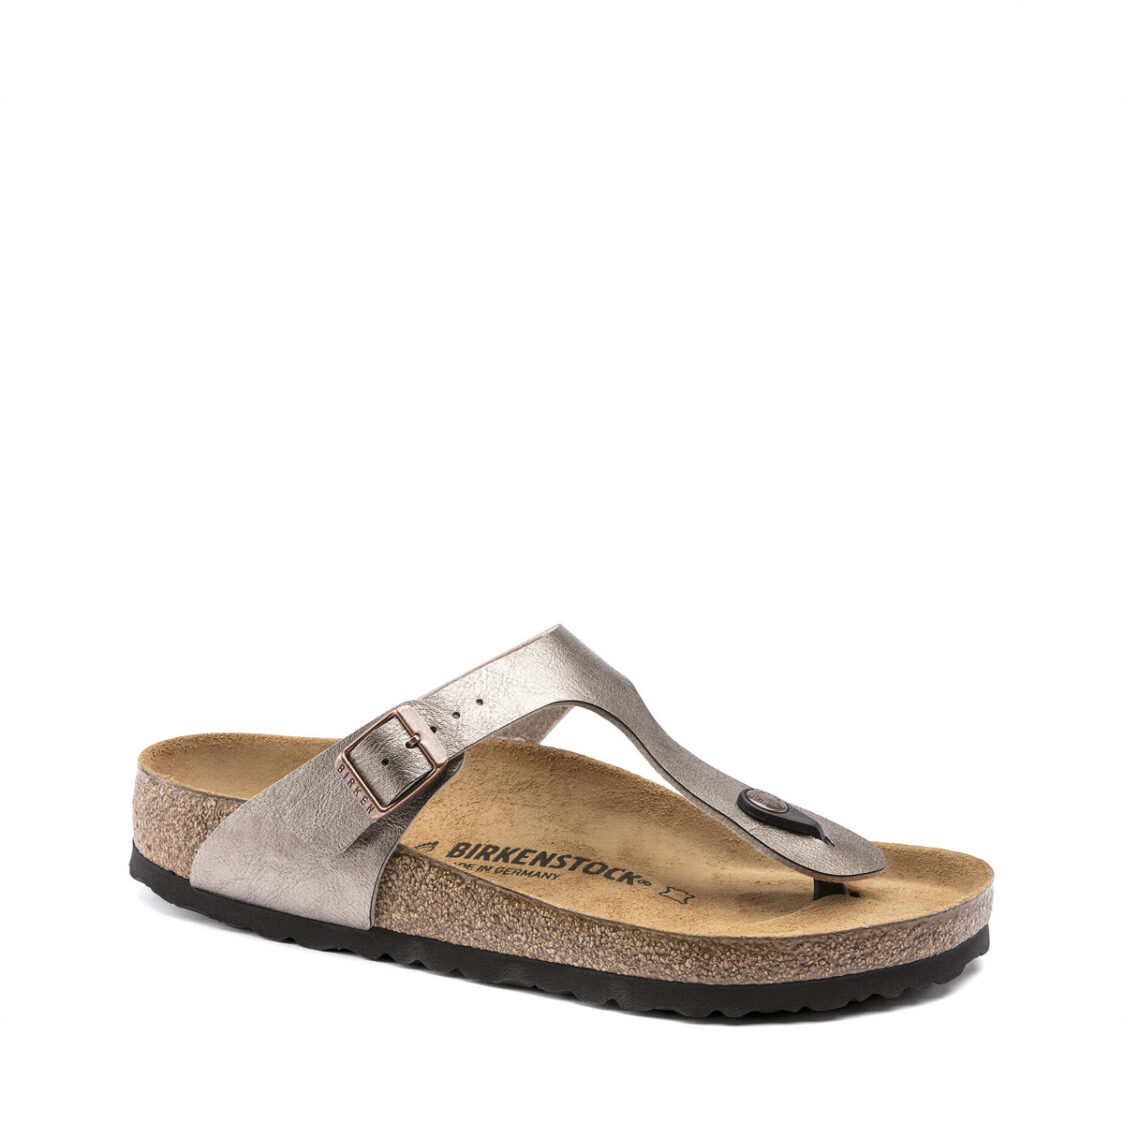 Birkenstock Gizeh Birko-Flor Womens Regular Width Sandals Graceful Taupe